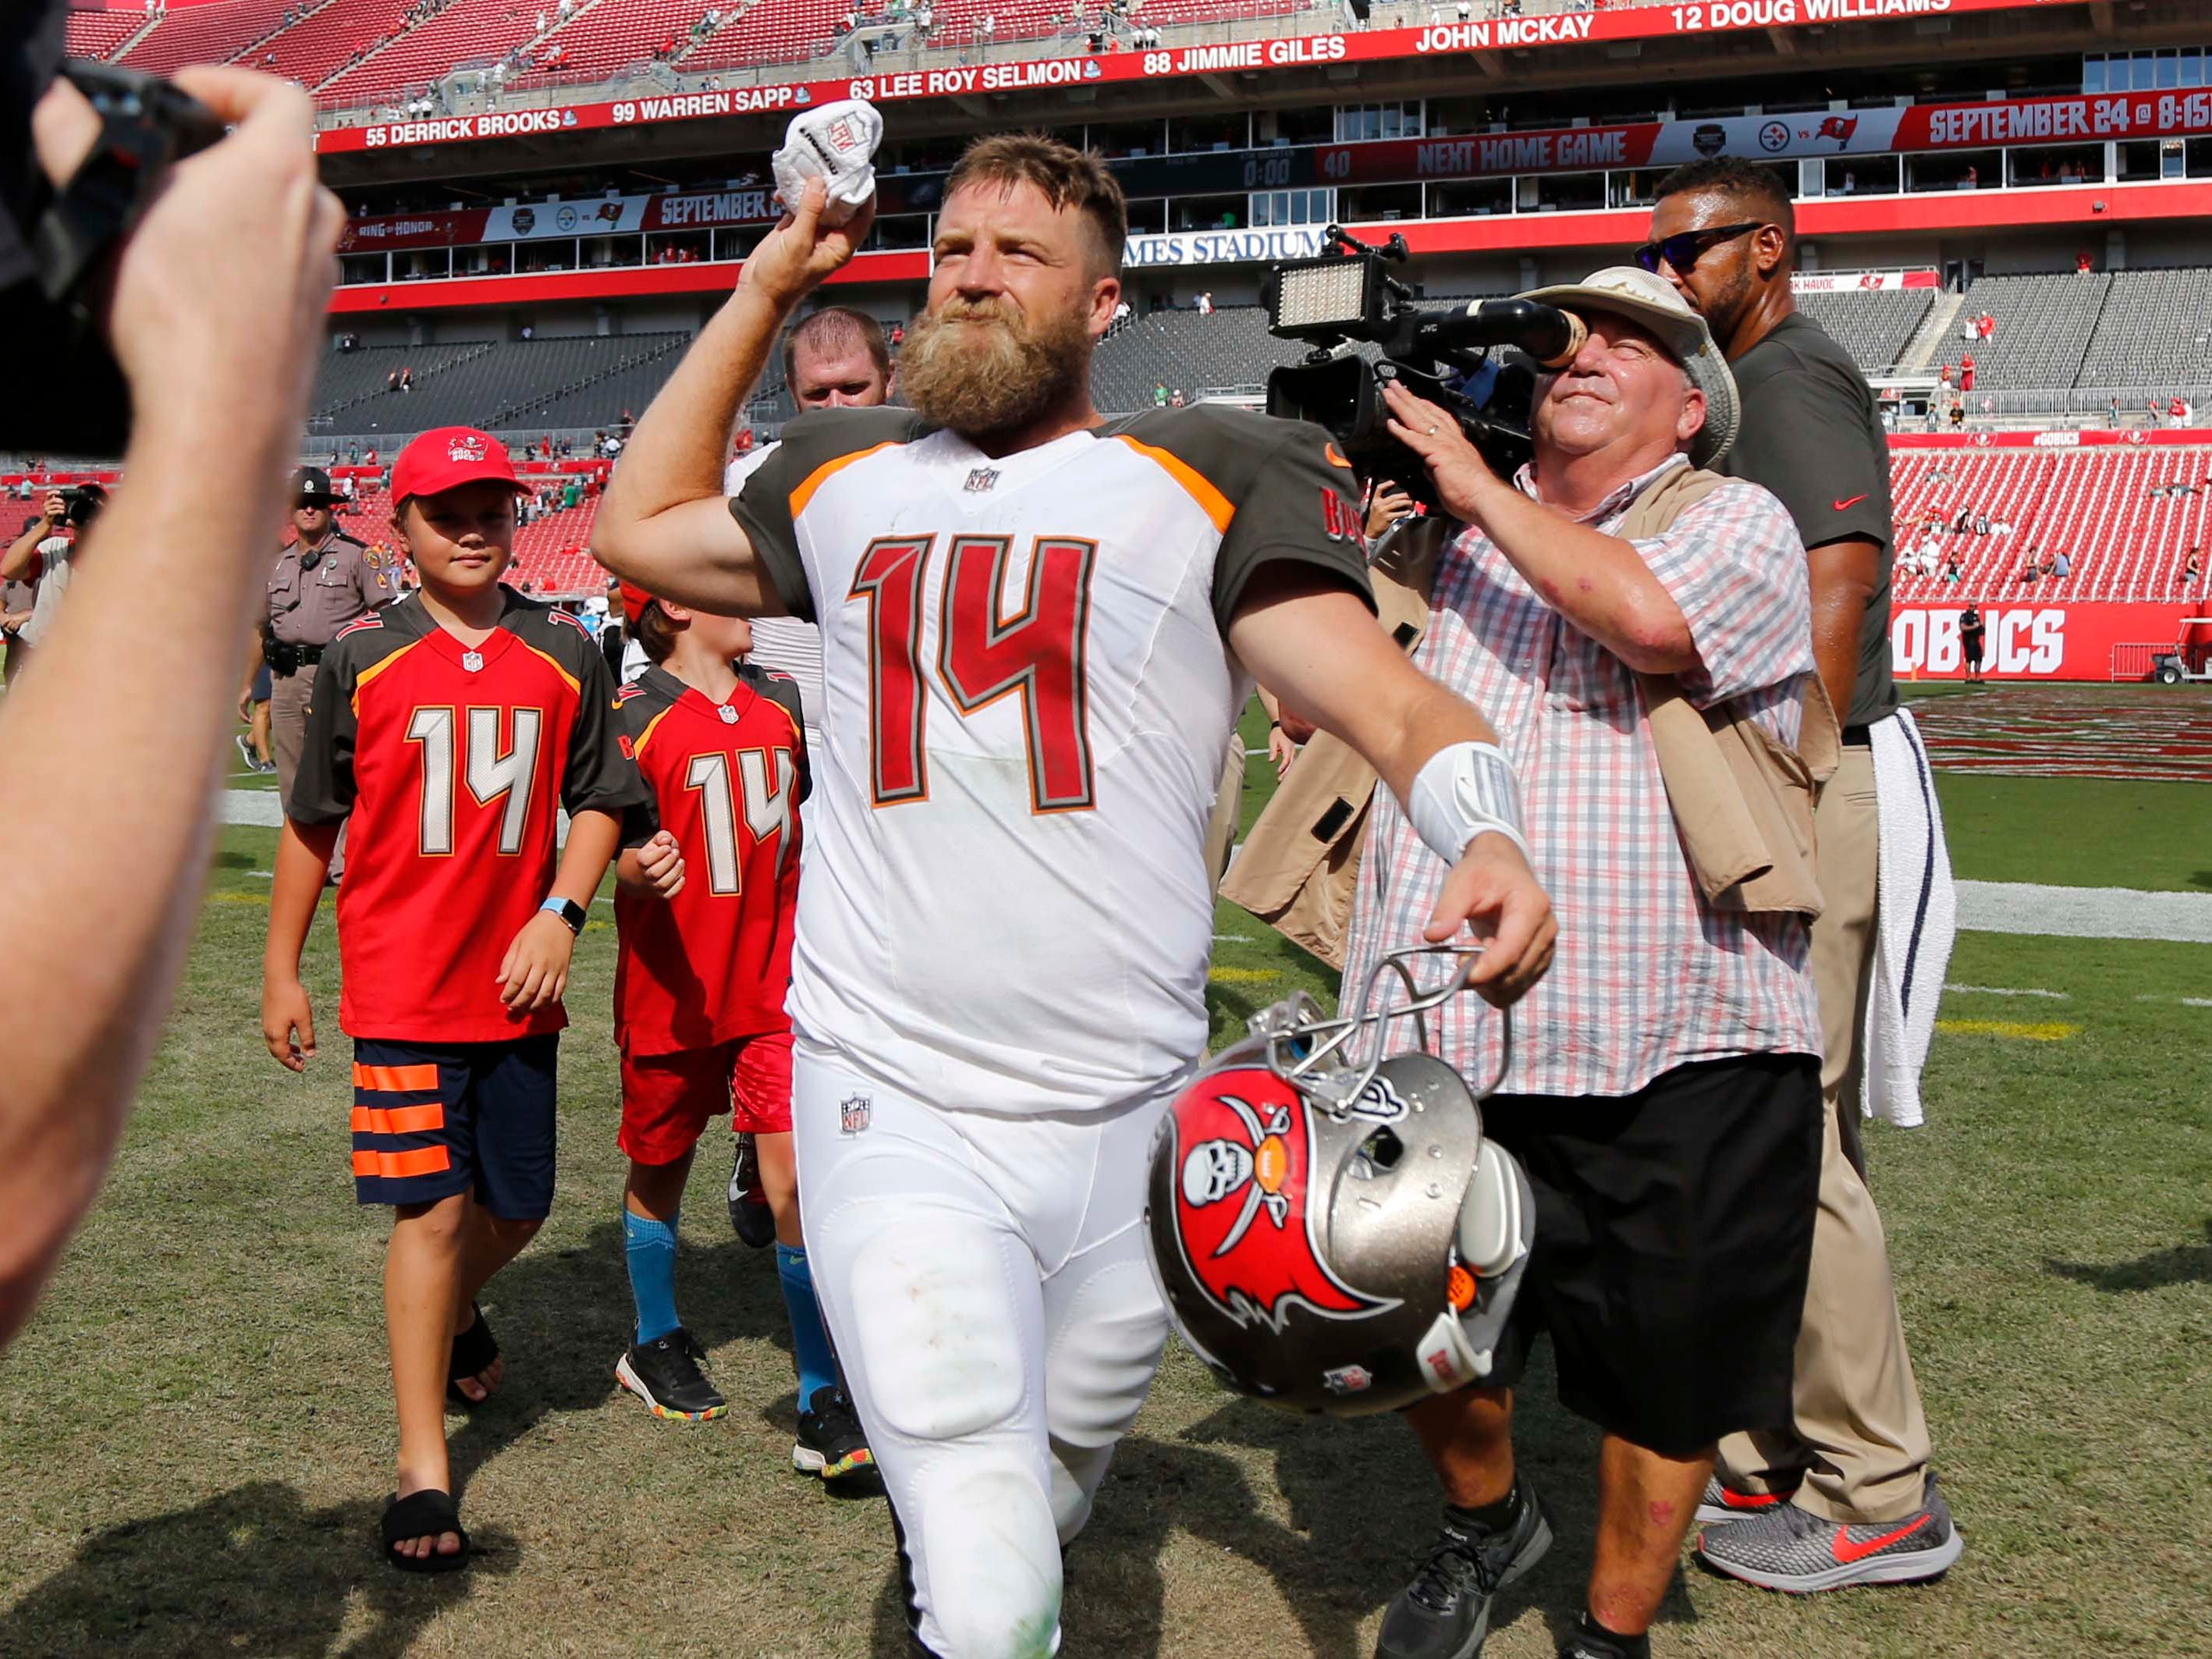 Sep 16, 2018; Tampa, FL, USA;Tampa Bay Buccaneers quarterback Ryan Fitzpatrick (14) runs off the field as they beat the Philadelphia Eagles at Raymond James Stadium. Mandatory Credit: Kim Klement-USA TODAY Sports